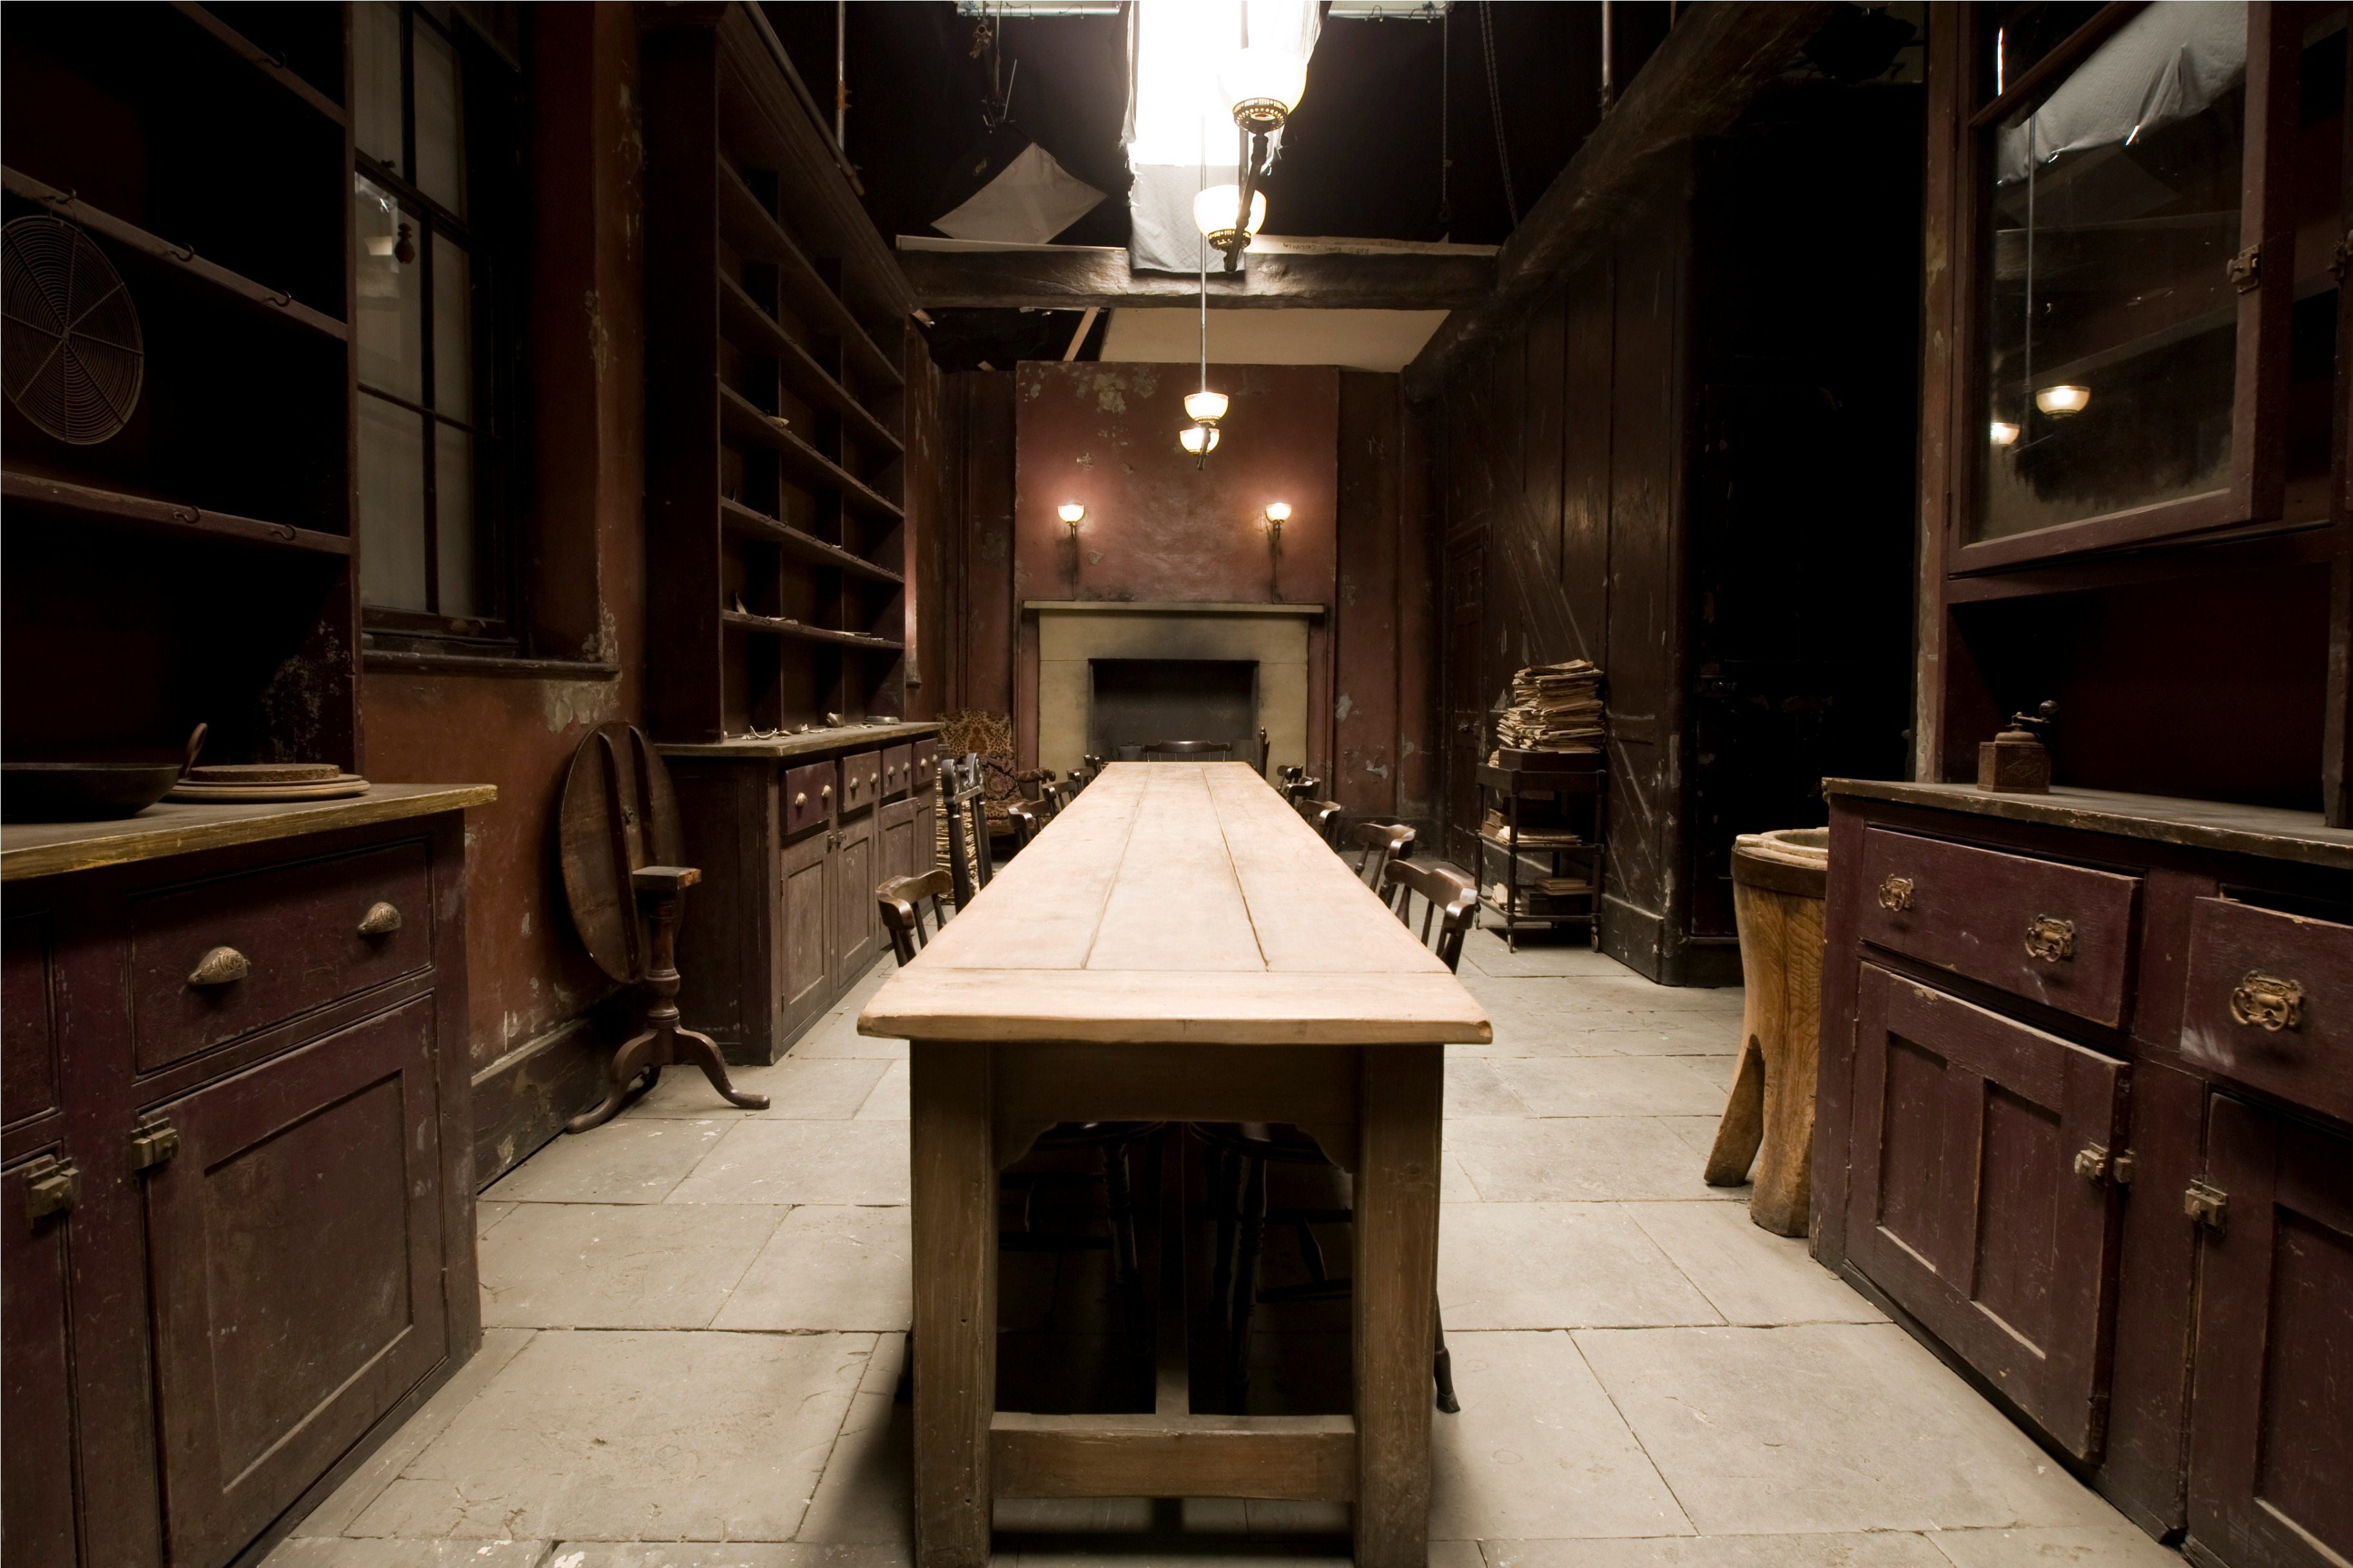 12 Grimmauld Place Harry Potter Wiki